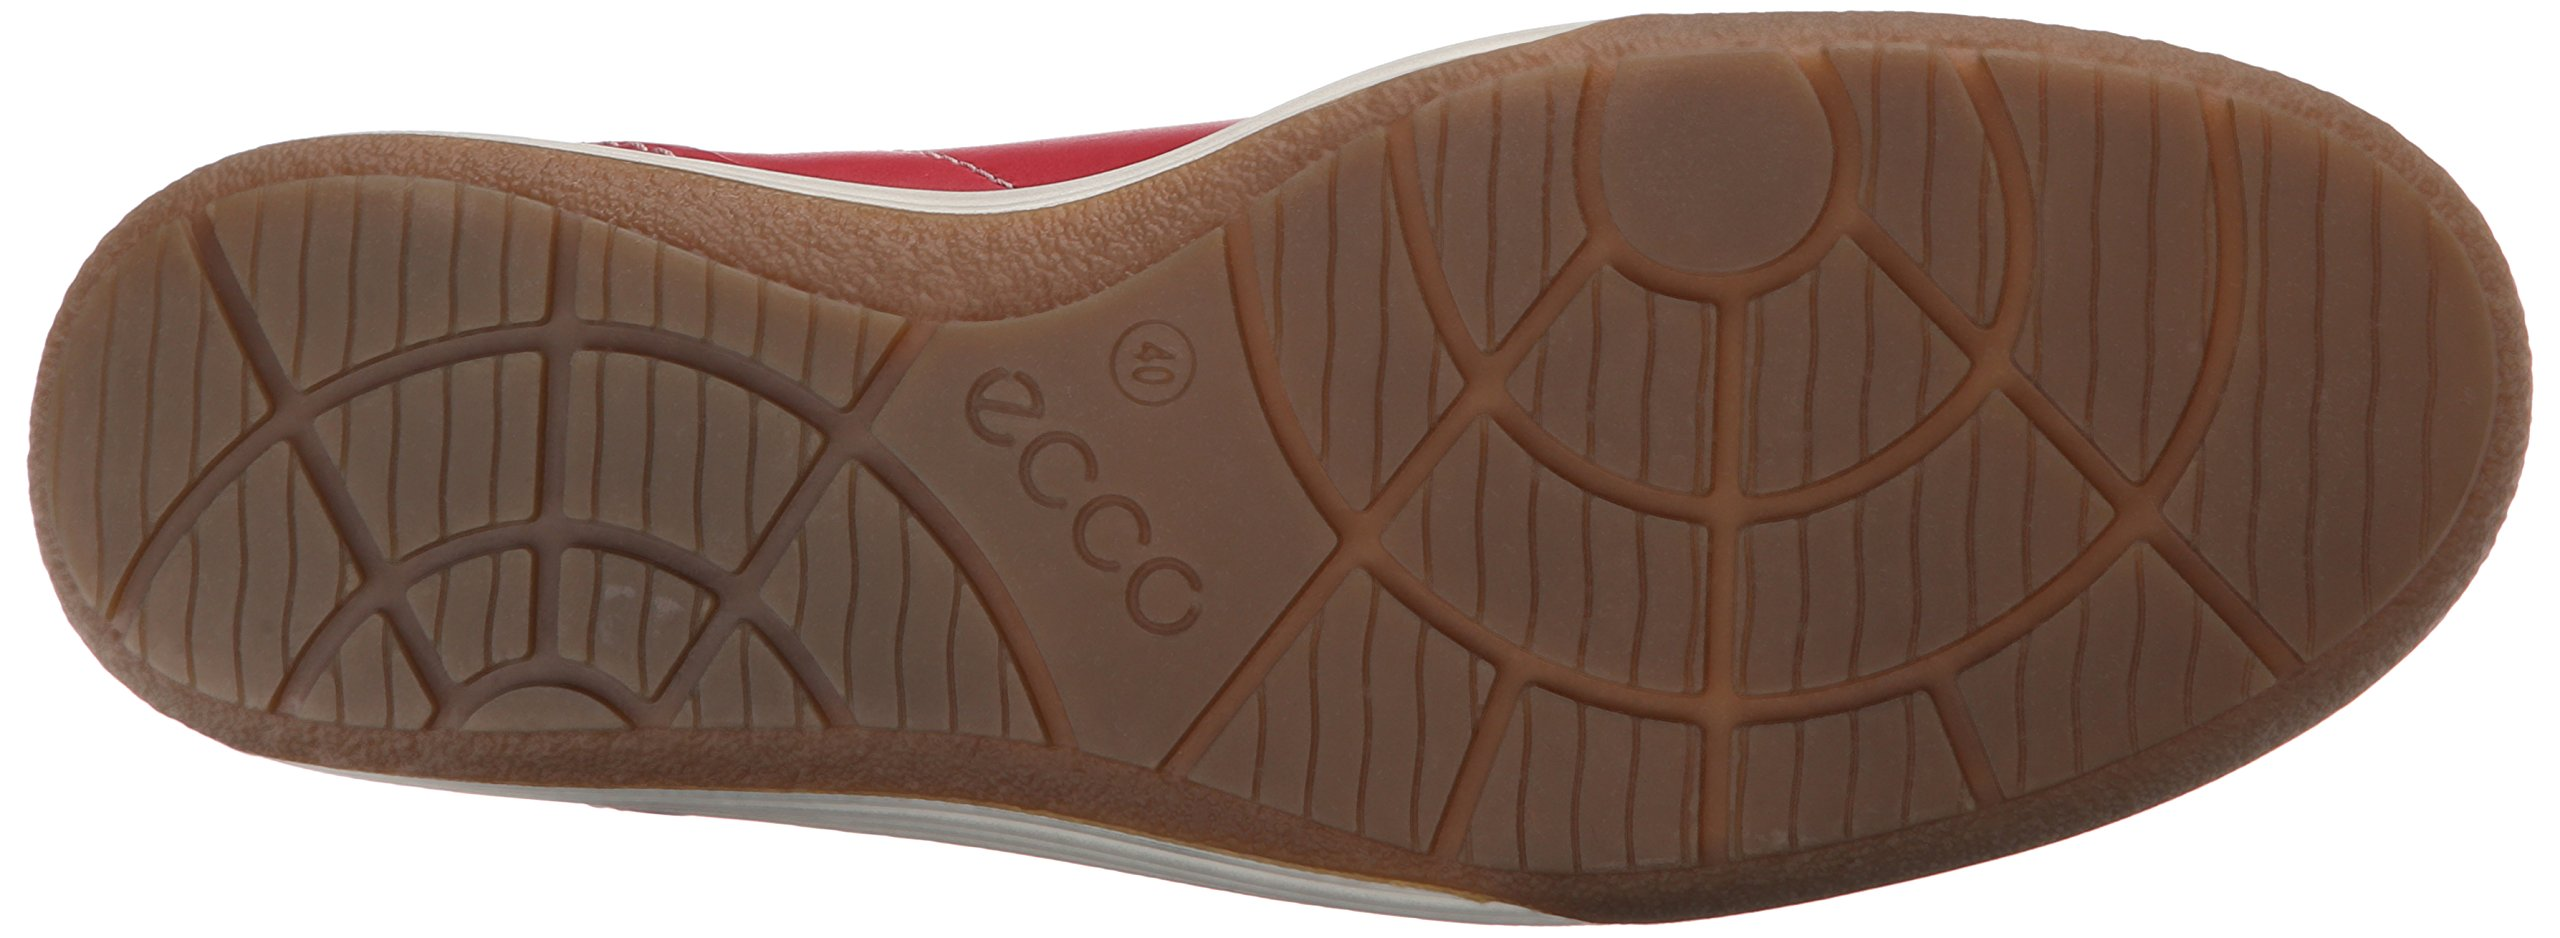 ECCO Footwear Womens Chase Tie Sneaker, Chilli Red, 39 EU/8-8.5 M US by ECCO (Image #3)